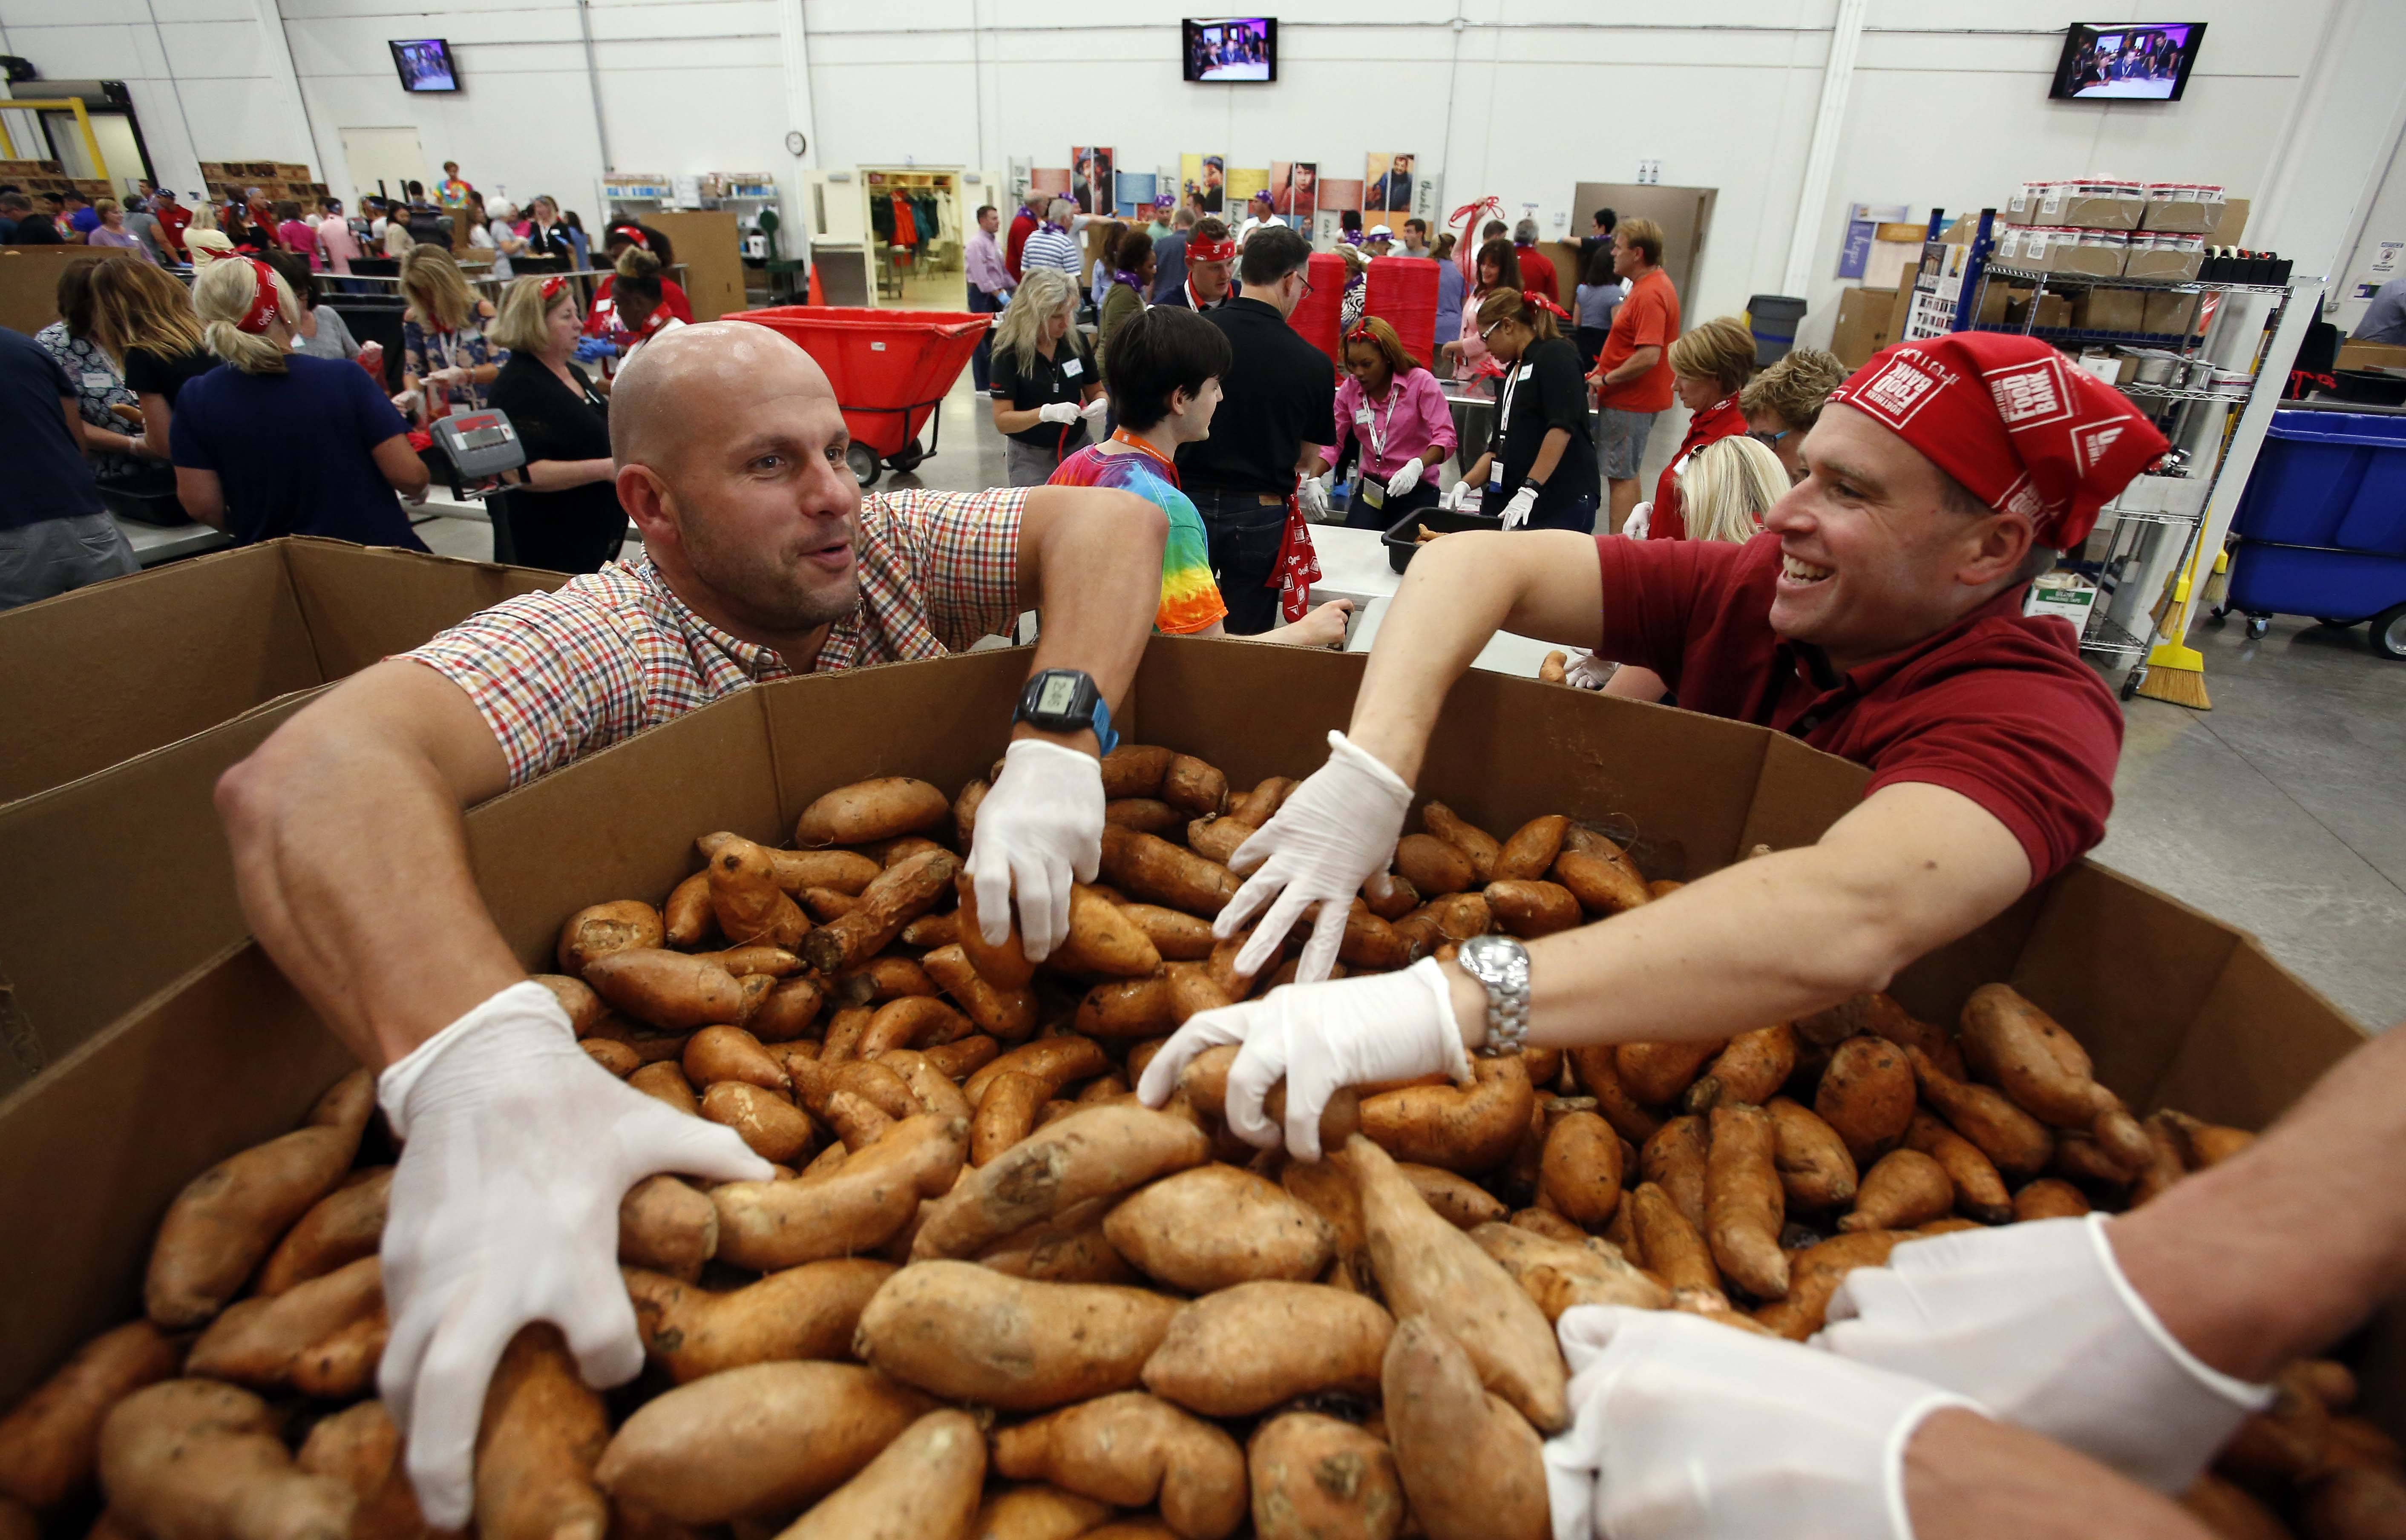 Brad Price, of Knoxville TN, left, and Paul Nicks of Bartlett, and about 250 employees from Kellogg's volunteered to pack food Wednesday afternoon at the Northern Illinois Food Bank in Geneva. It's the largest volunteer group packing event the food bank has ever done.